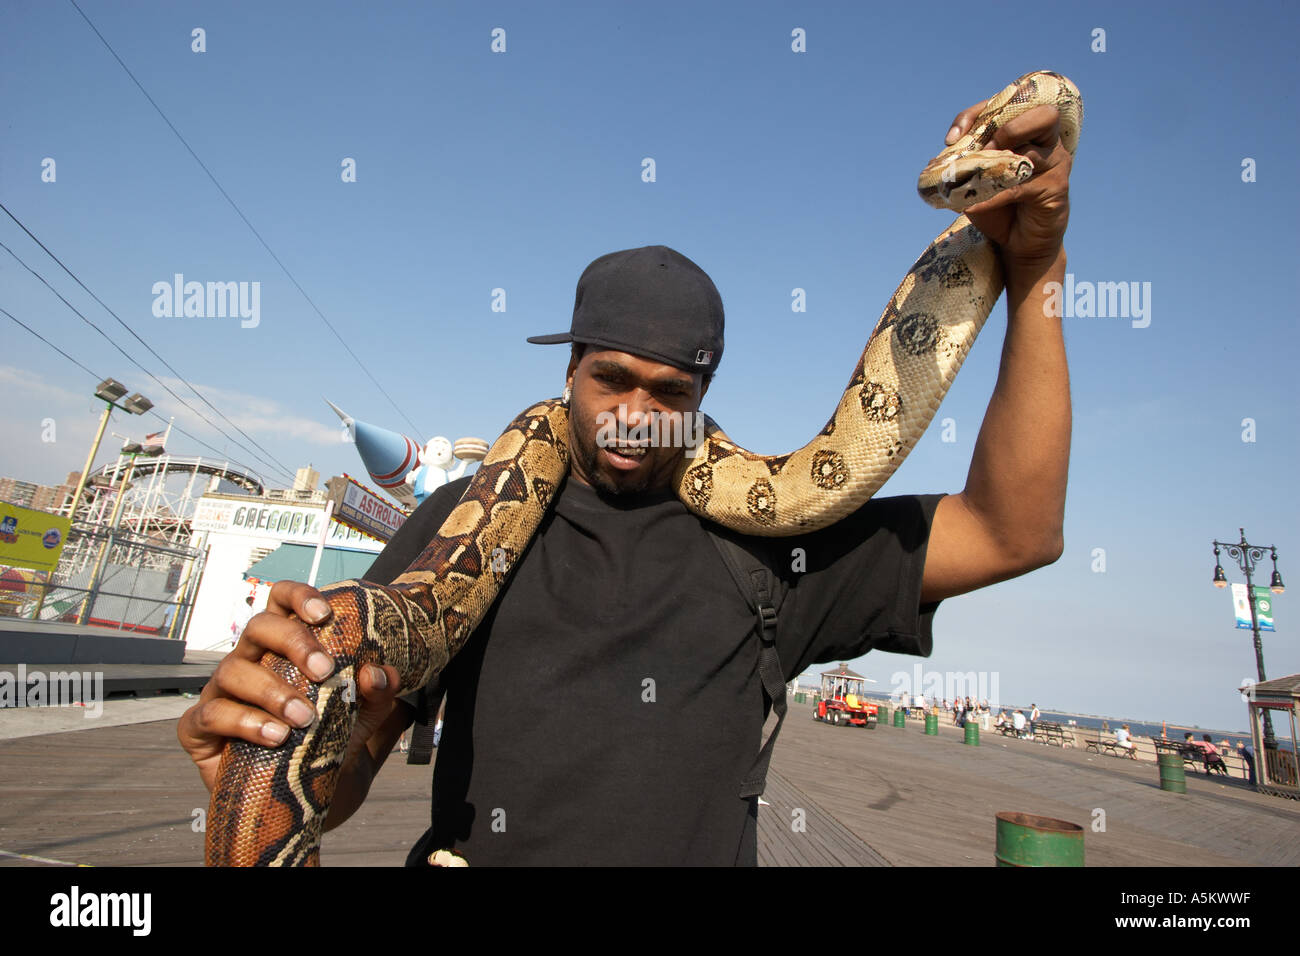 Man with pet python on the boardwalk at Coney Island Stock Foto